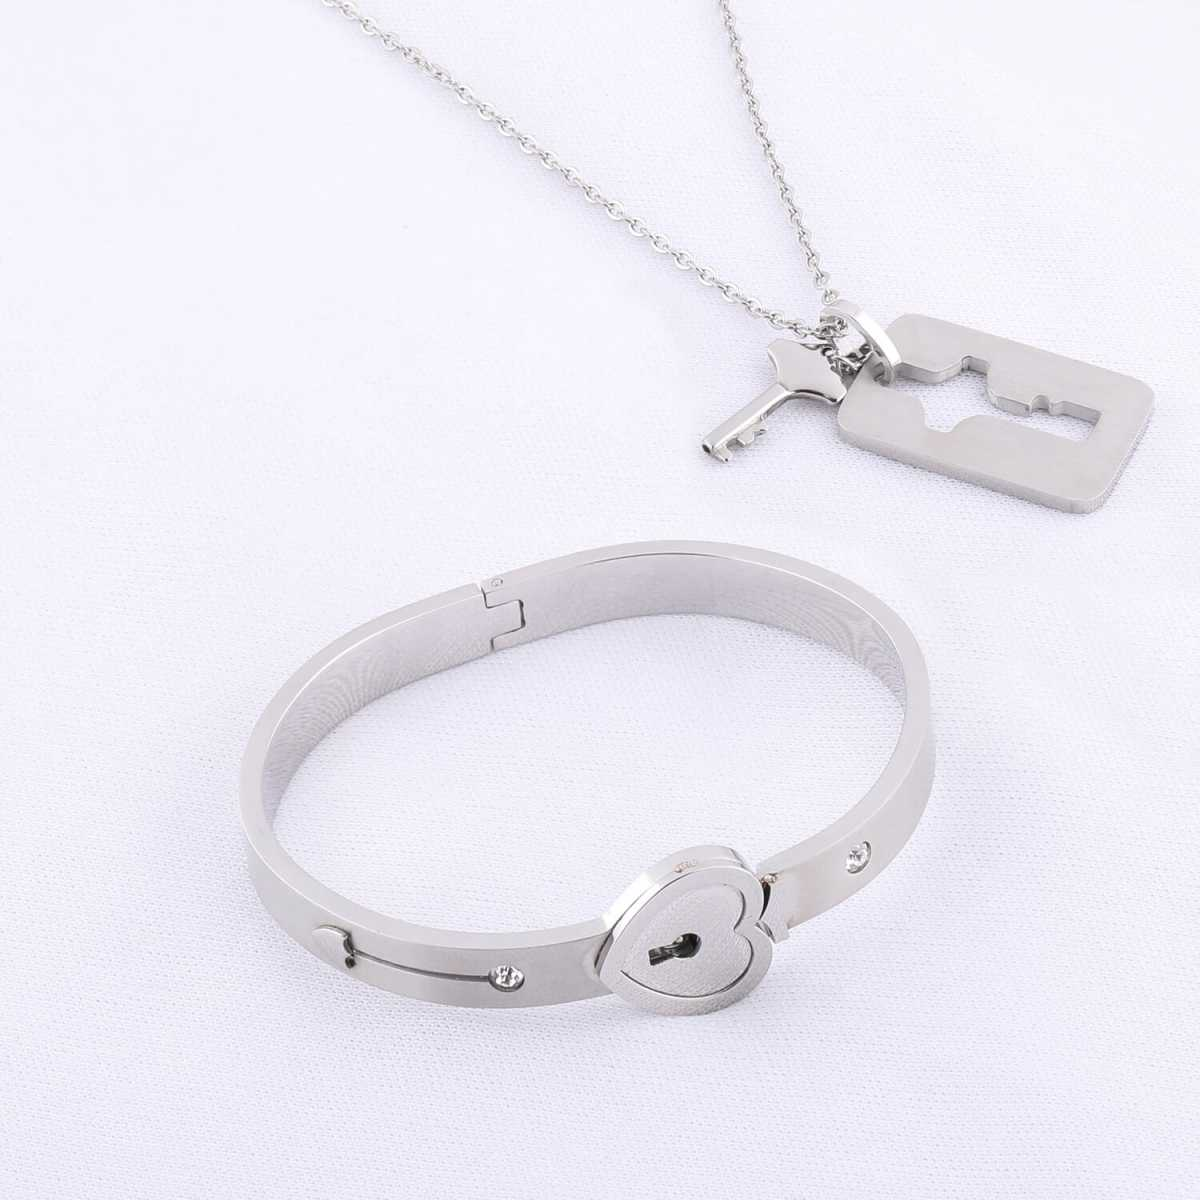 Silver Shine Classic Design Heart Lock and Key Stainless Steel Couple Bracelet &  Nacklace Set for Couples Men and Women